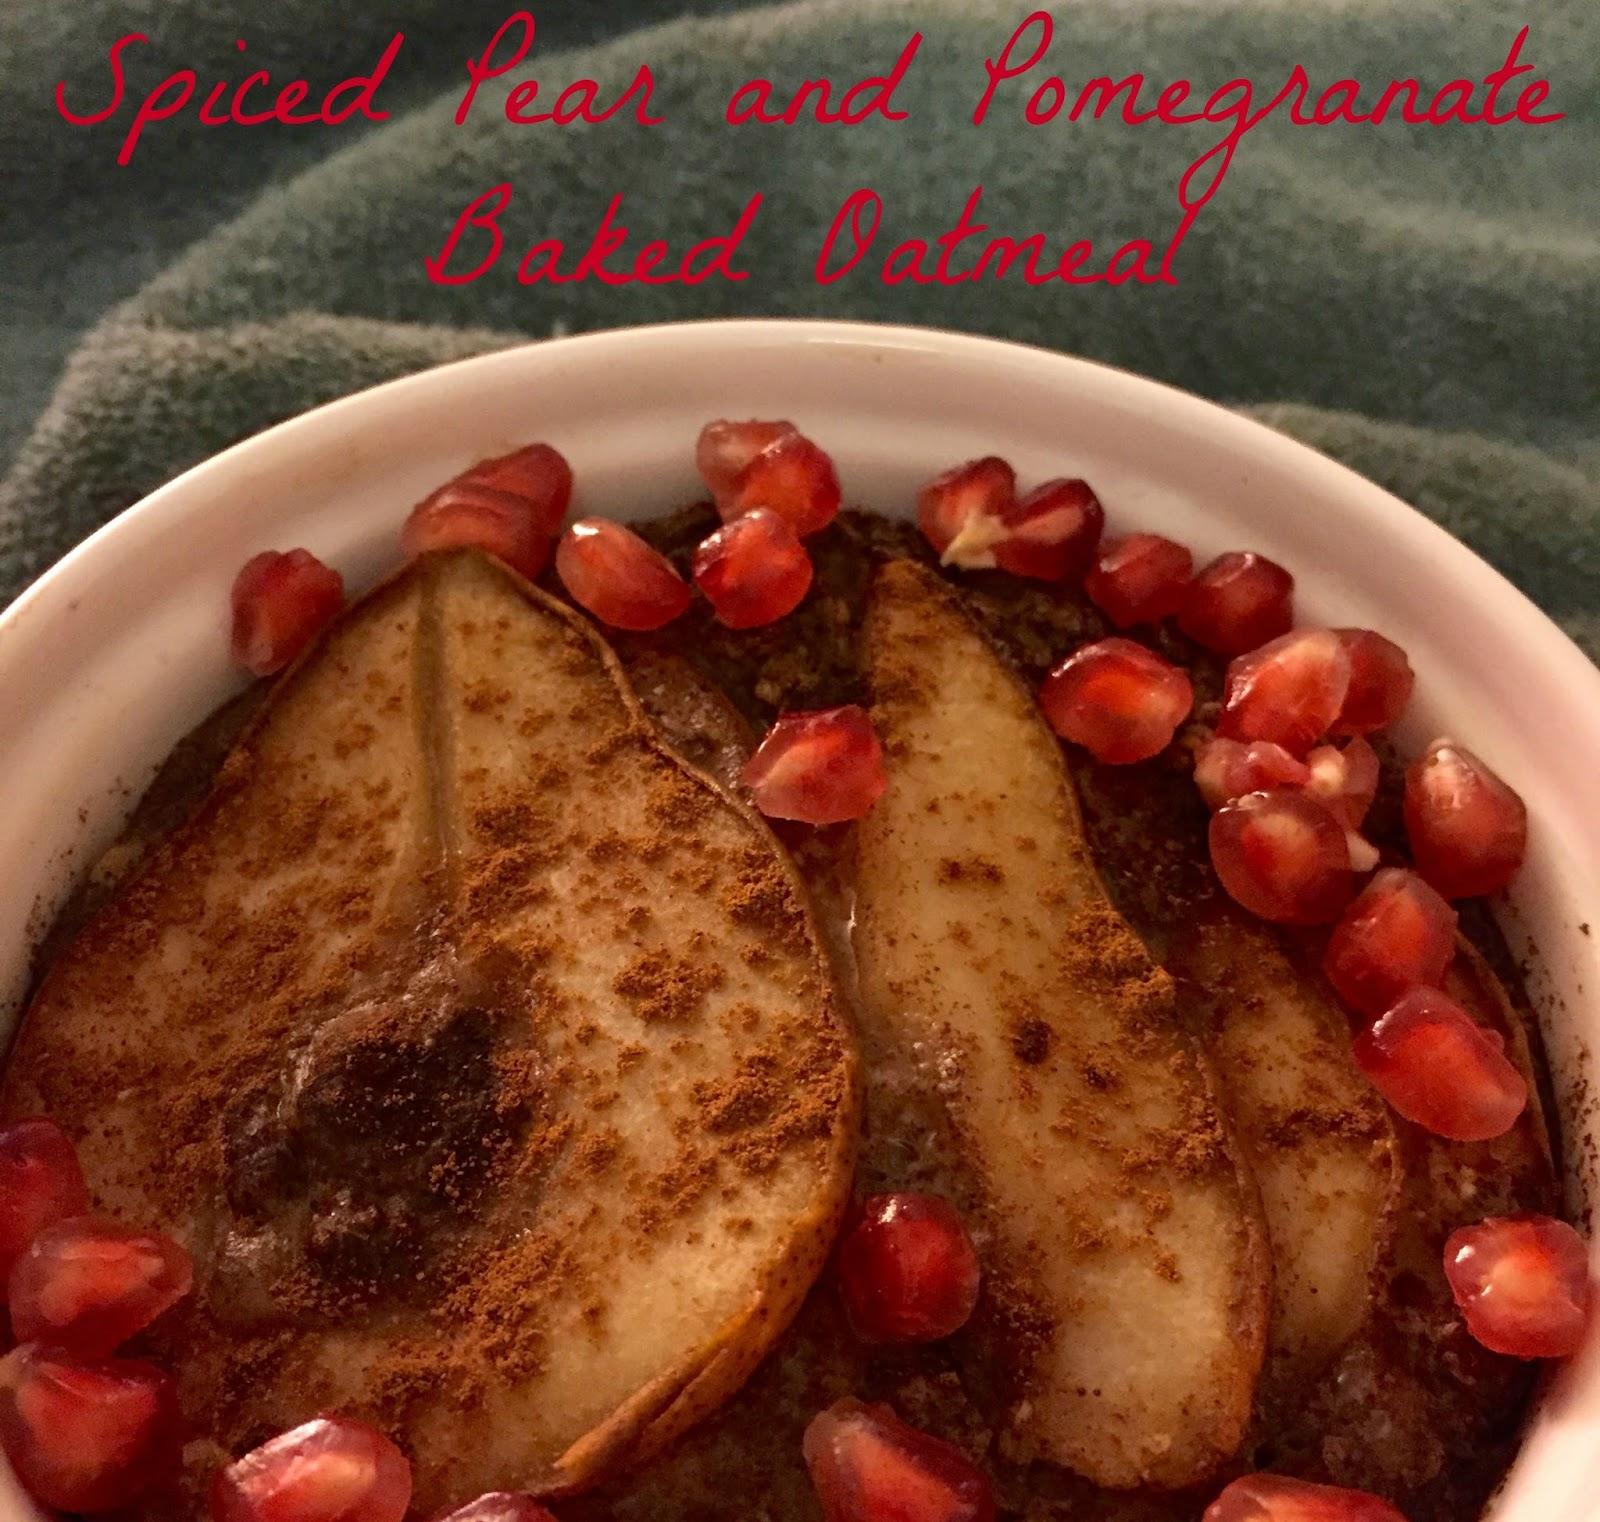 The Simple Life: Spiced Pear and Pomegranate Baked Oatmeal